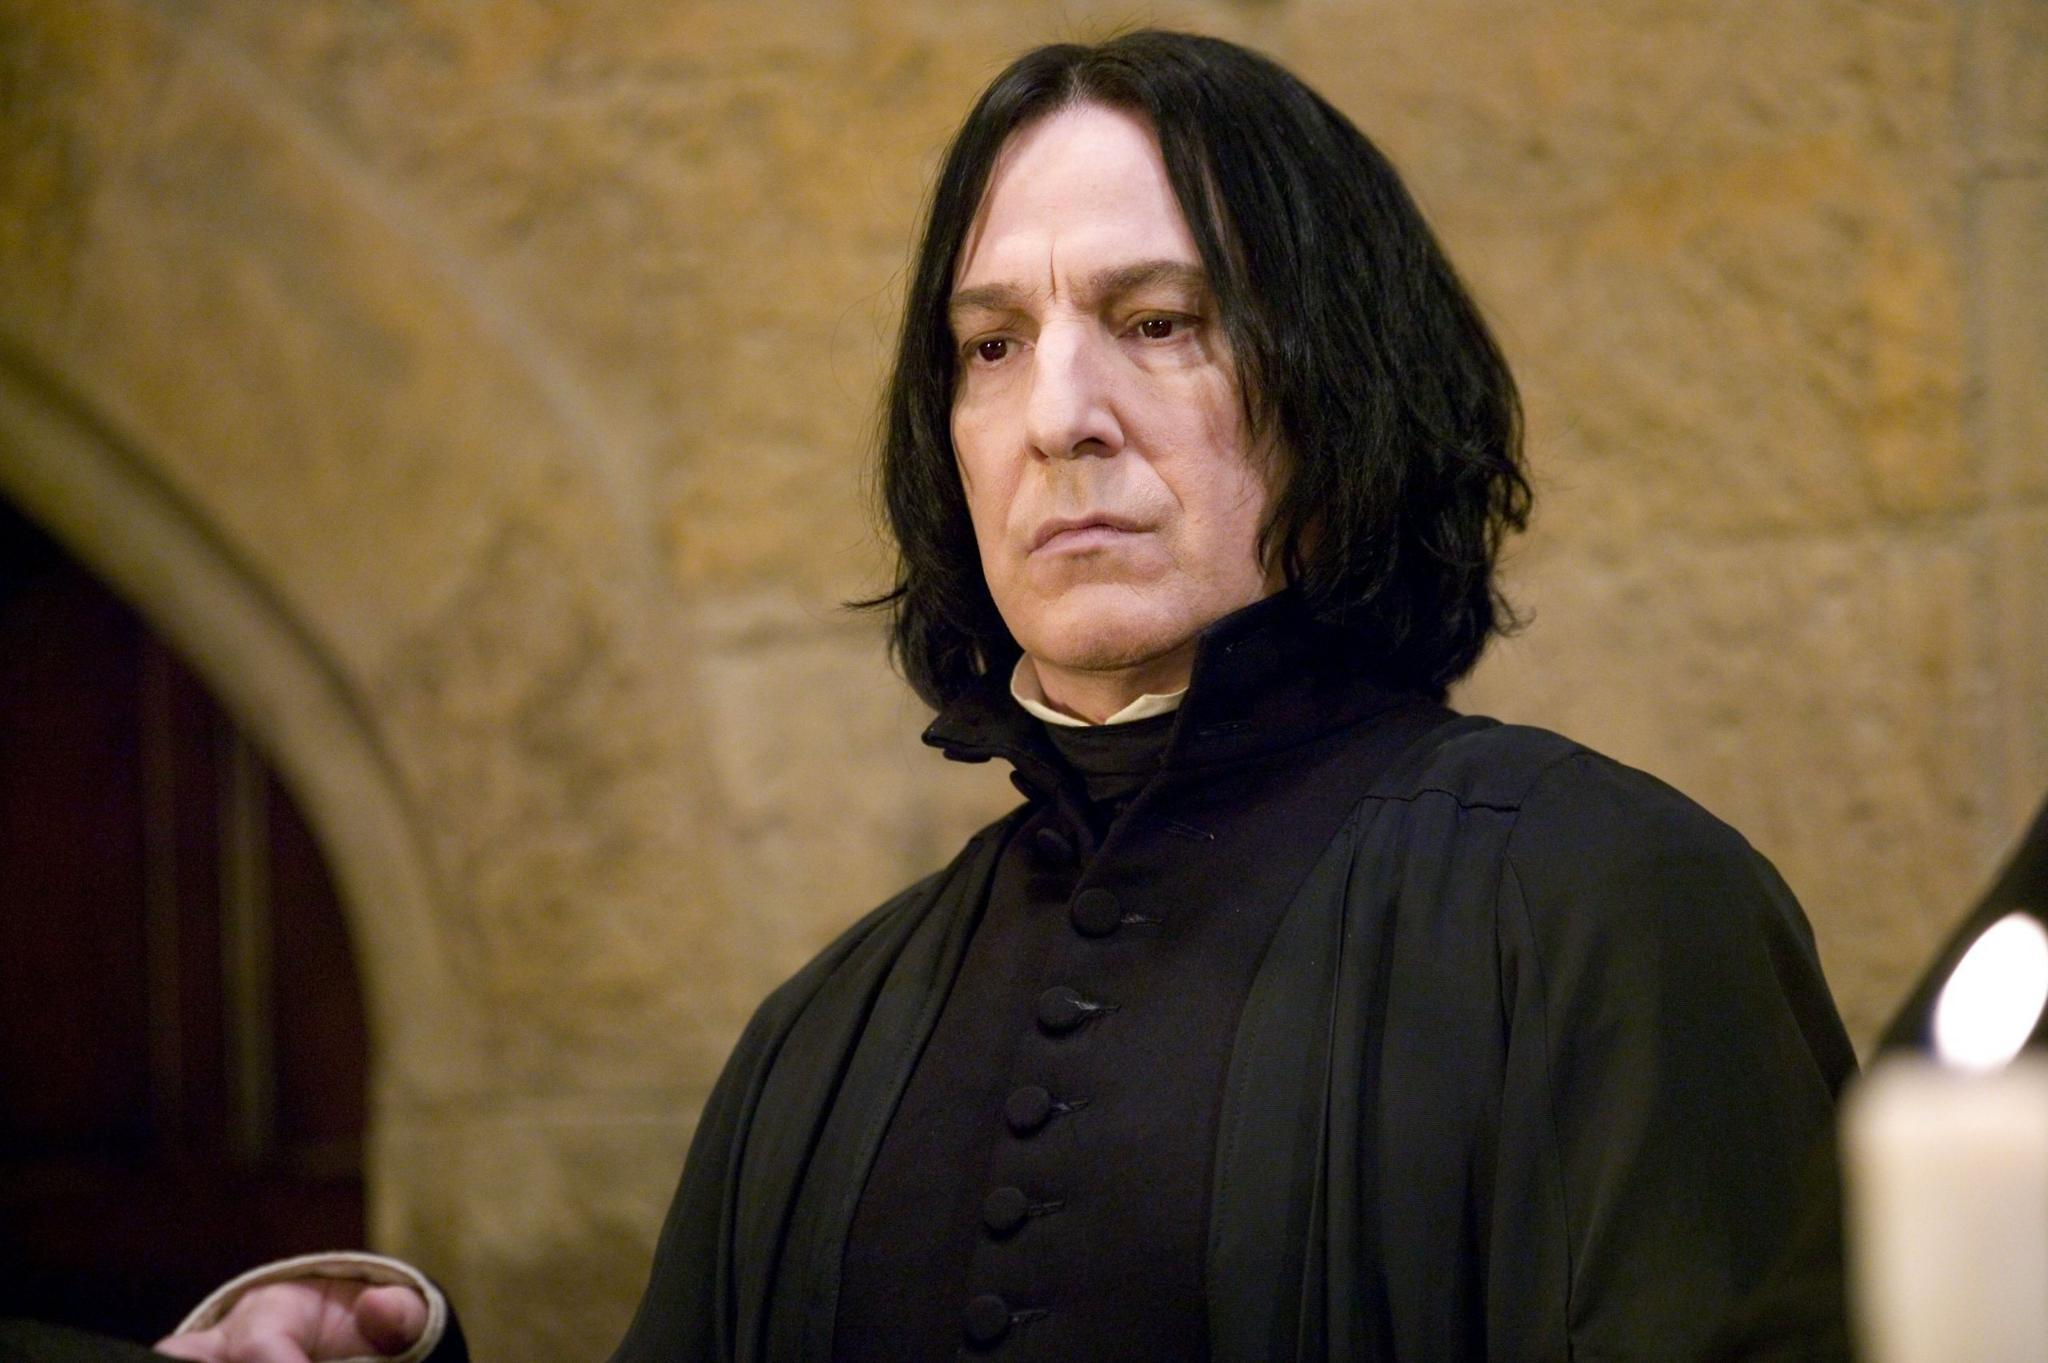 In the third book Prizinor of Azkaban, pro. snape tells the students to turn to page___ what number page is that?